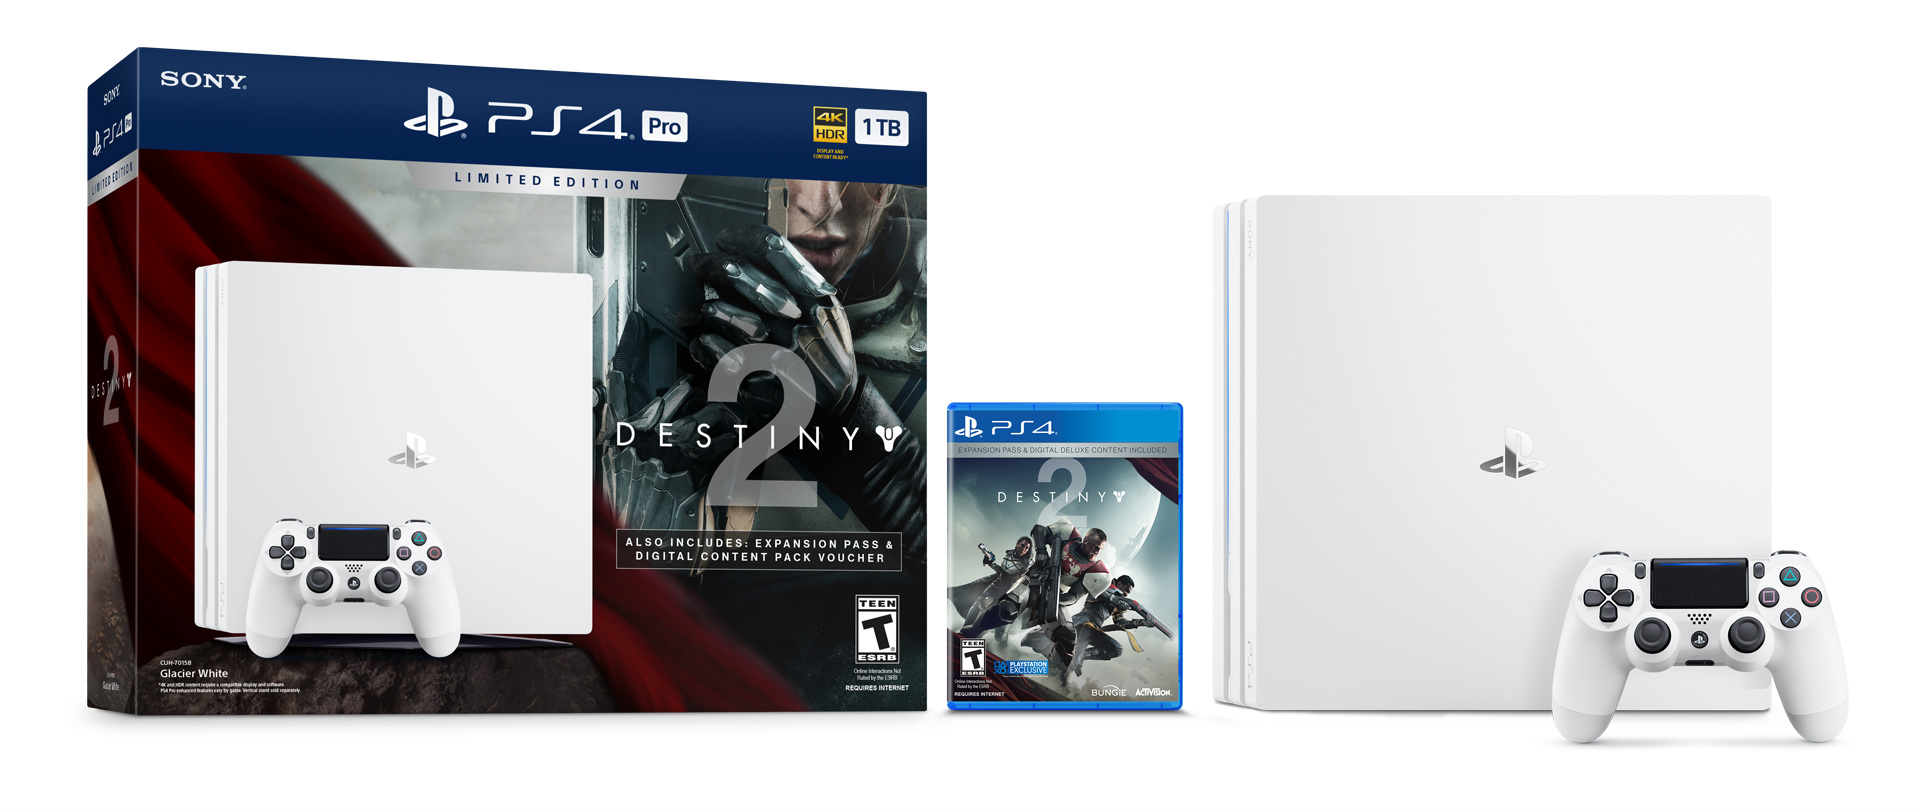 Destiny 2 collectors edition for sale - Destiny 2 Guide Story Missions Walkthrough Where Are Pre Order Items Clans Dlc Curse Of Osiris Expansion Usgamer